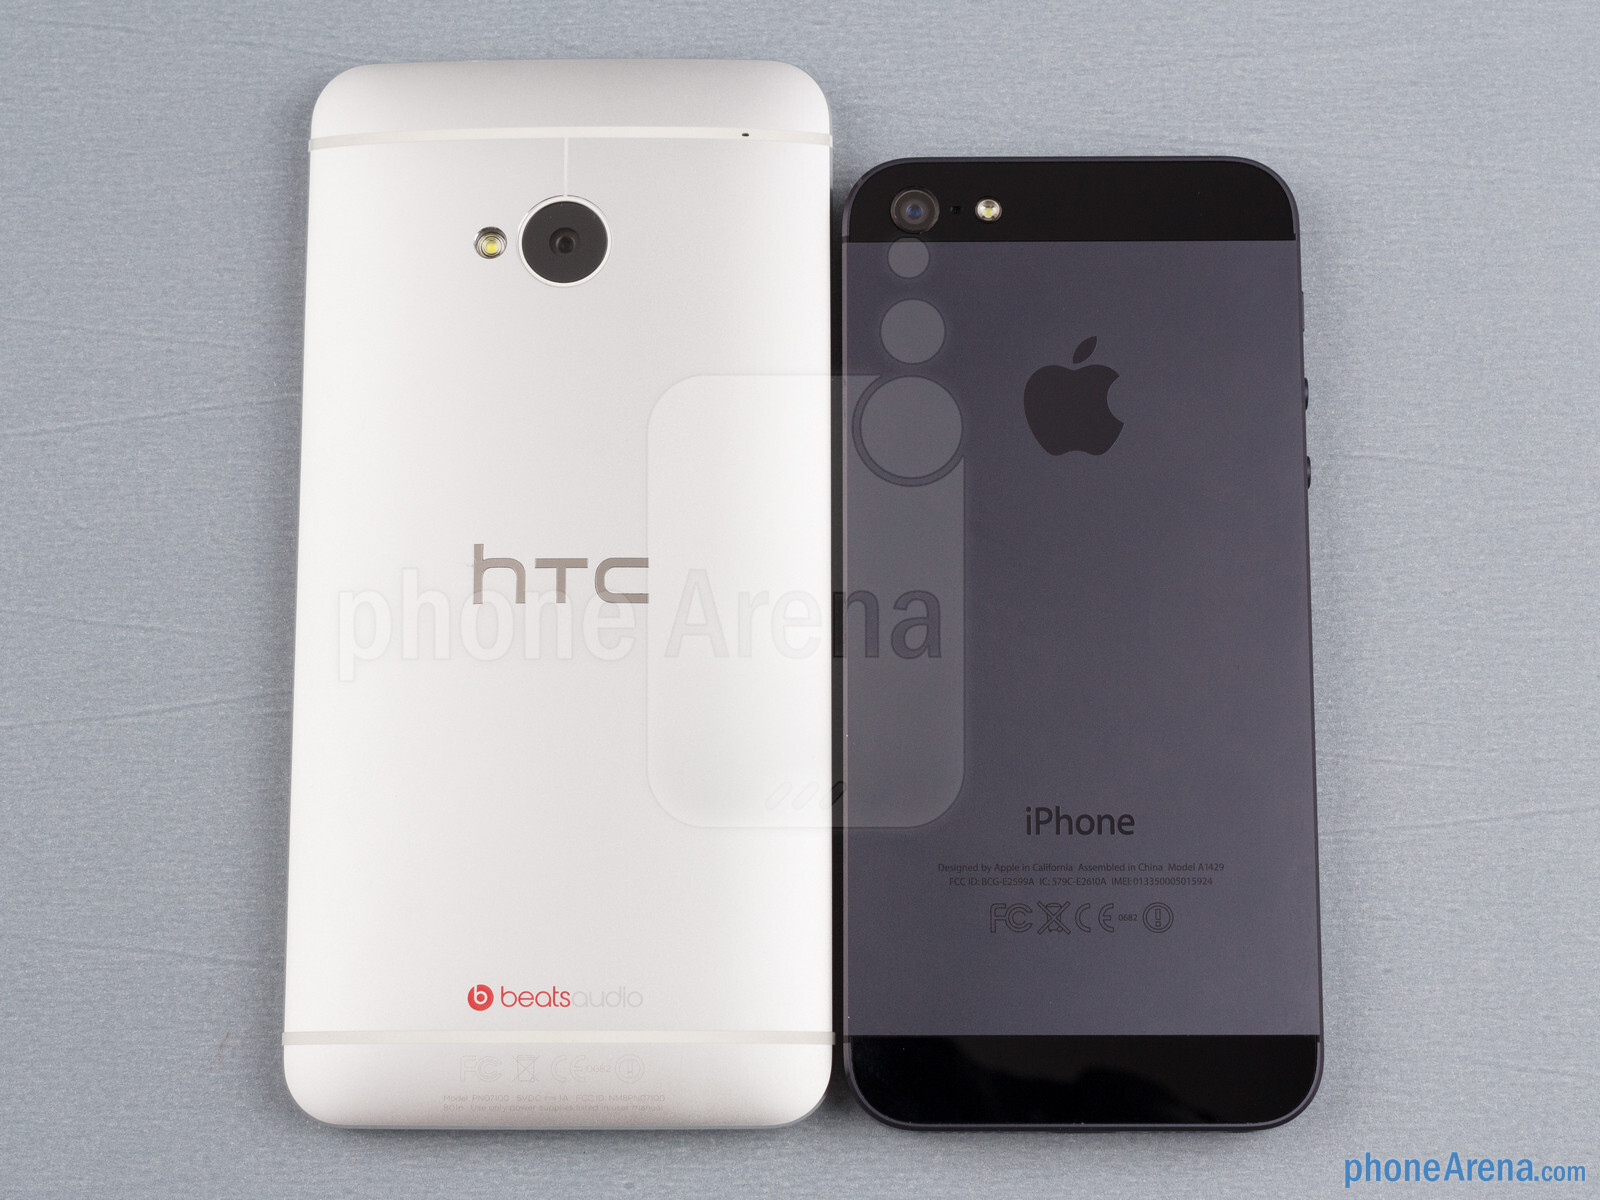 htc-one-vs-iphone-5